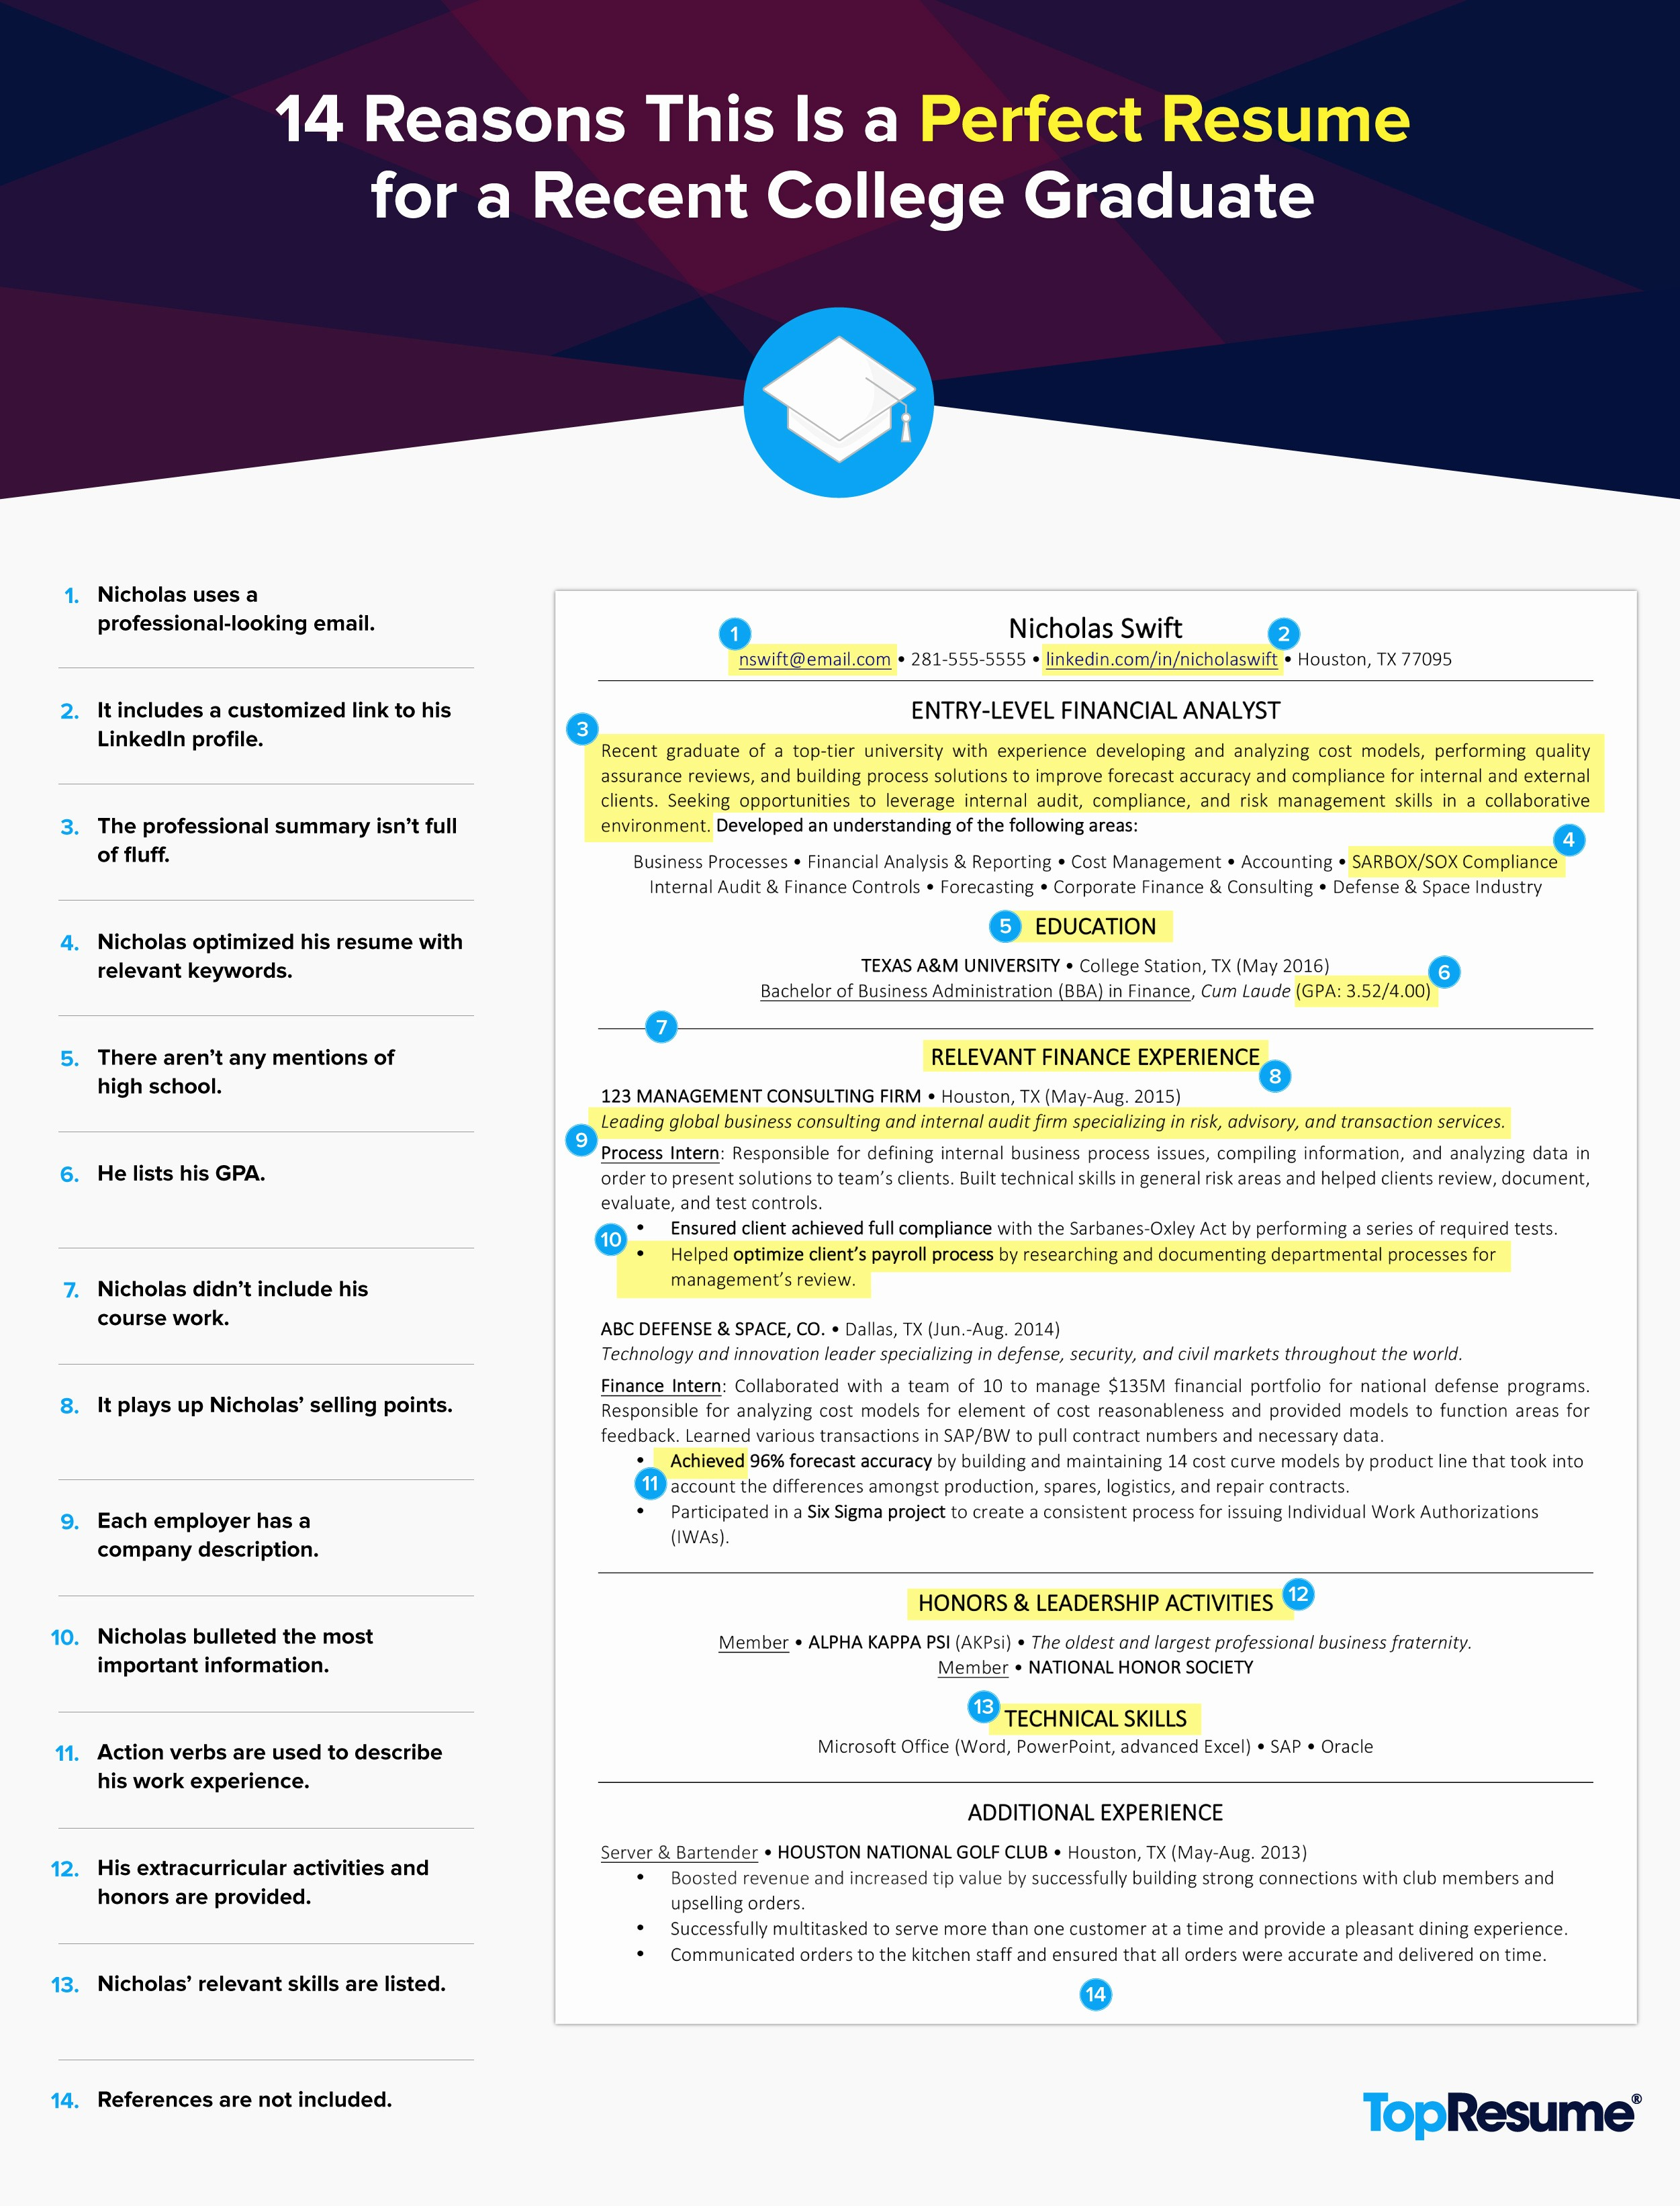 Resumes for Recent College Graduates Best Of 14 Reasons This is A Perfect Recent College Graduate